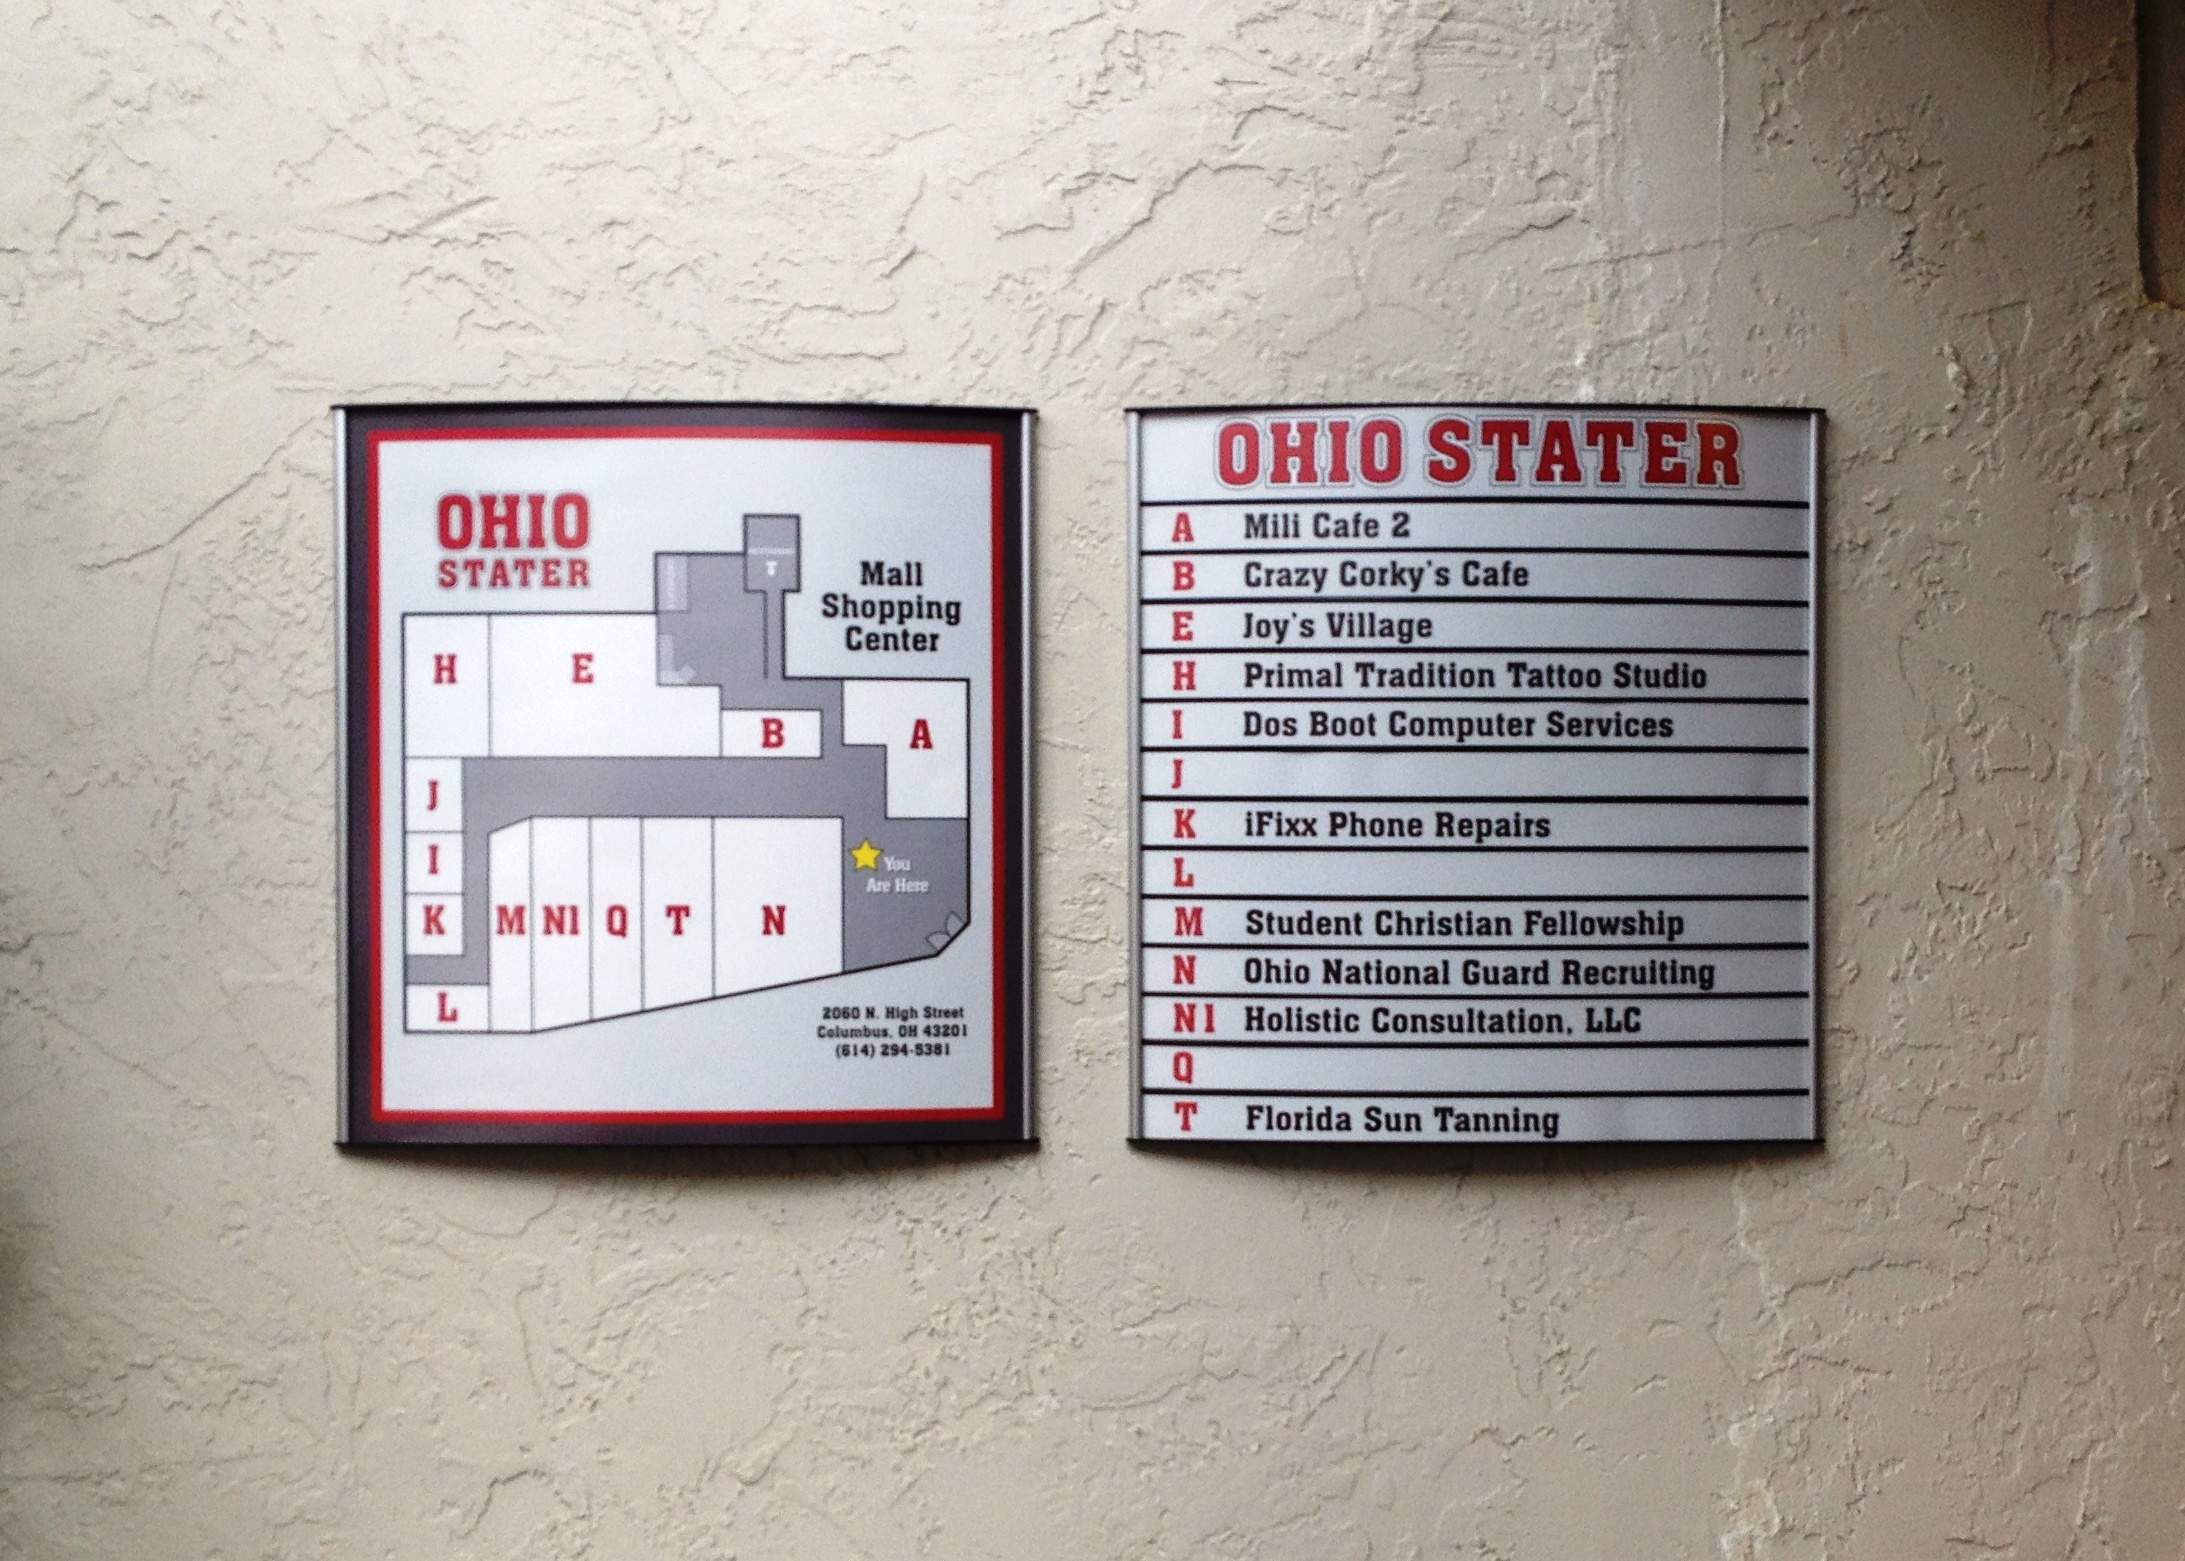 Exterior Directory Signage for The Ohio Stater in Columbus, OH